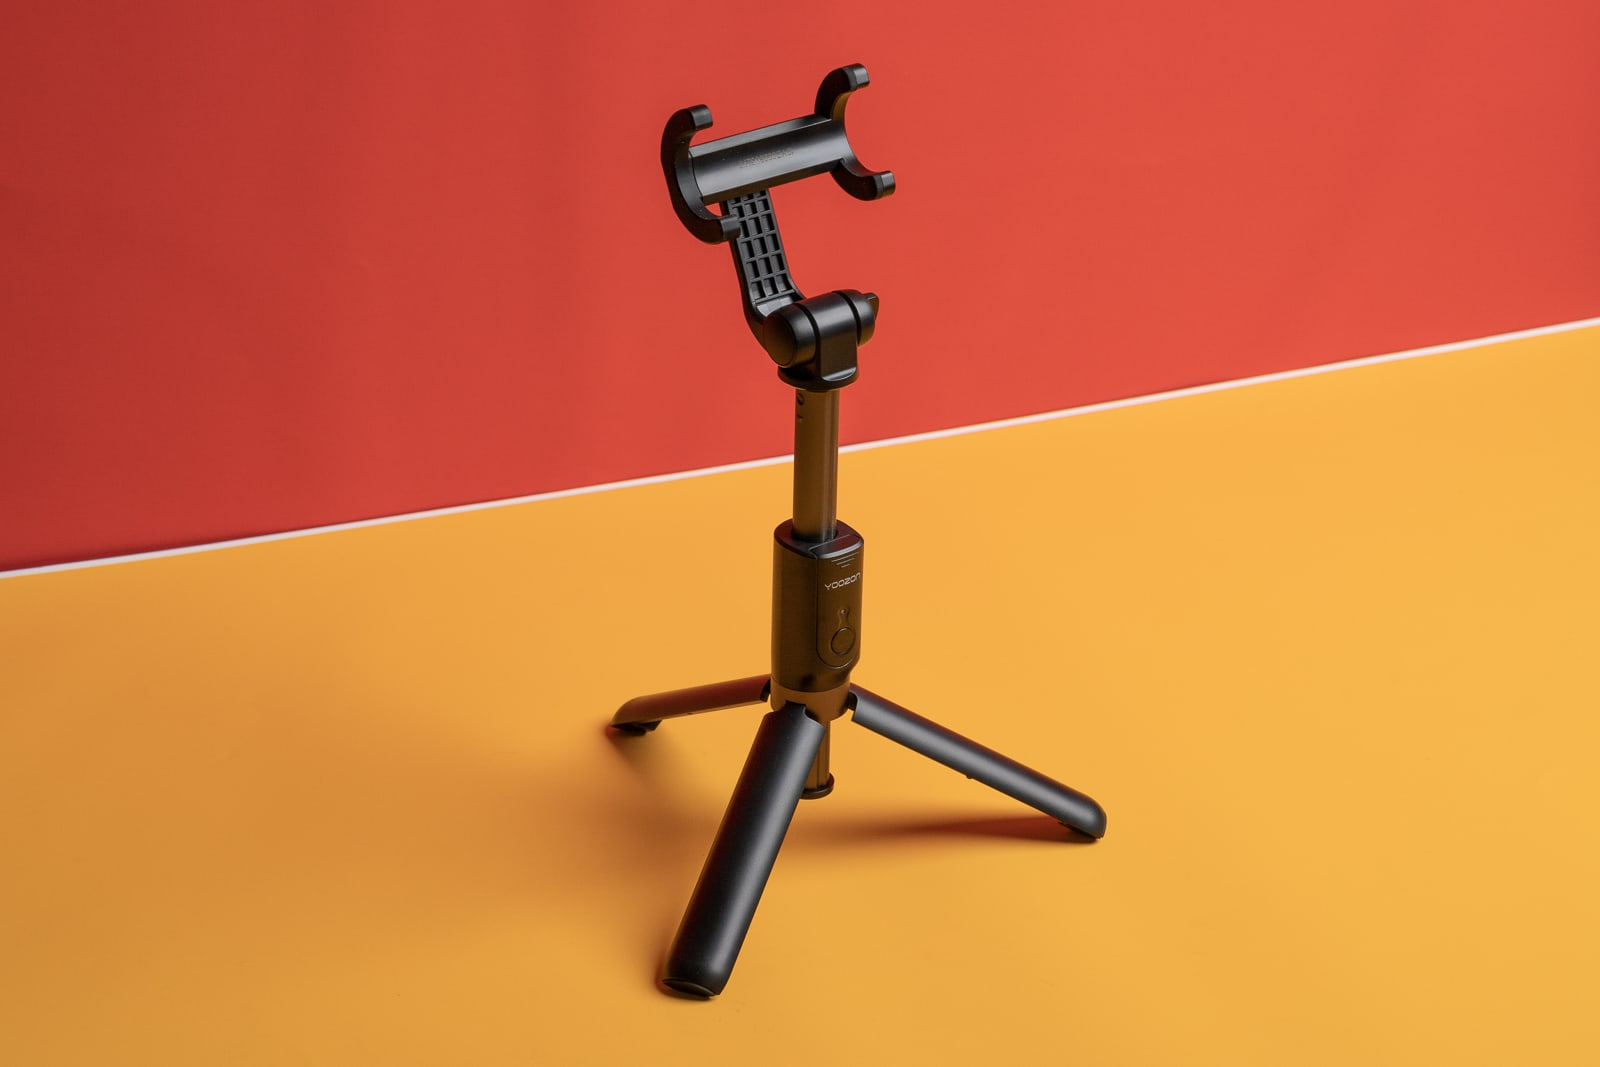 Tripods for smartphones